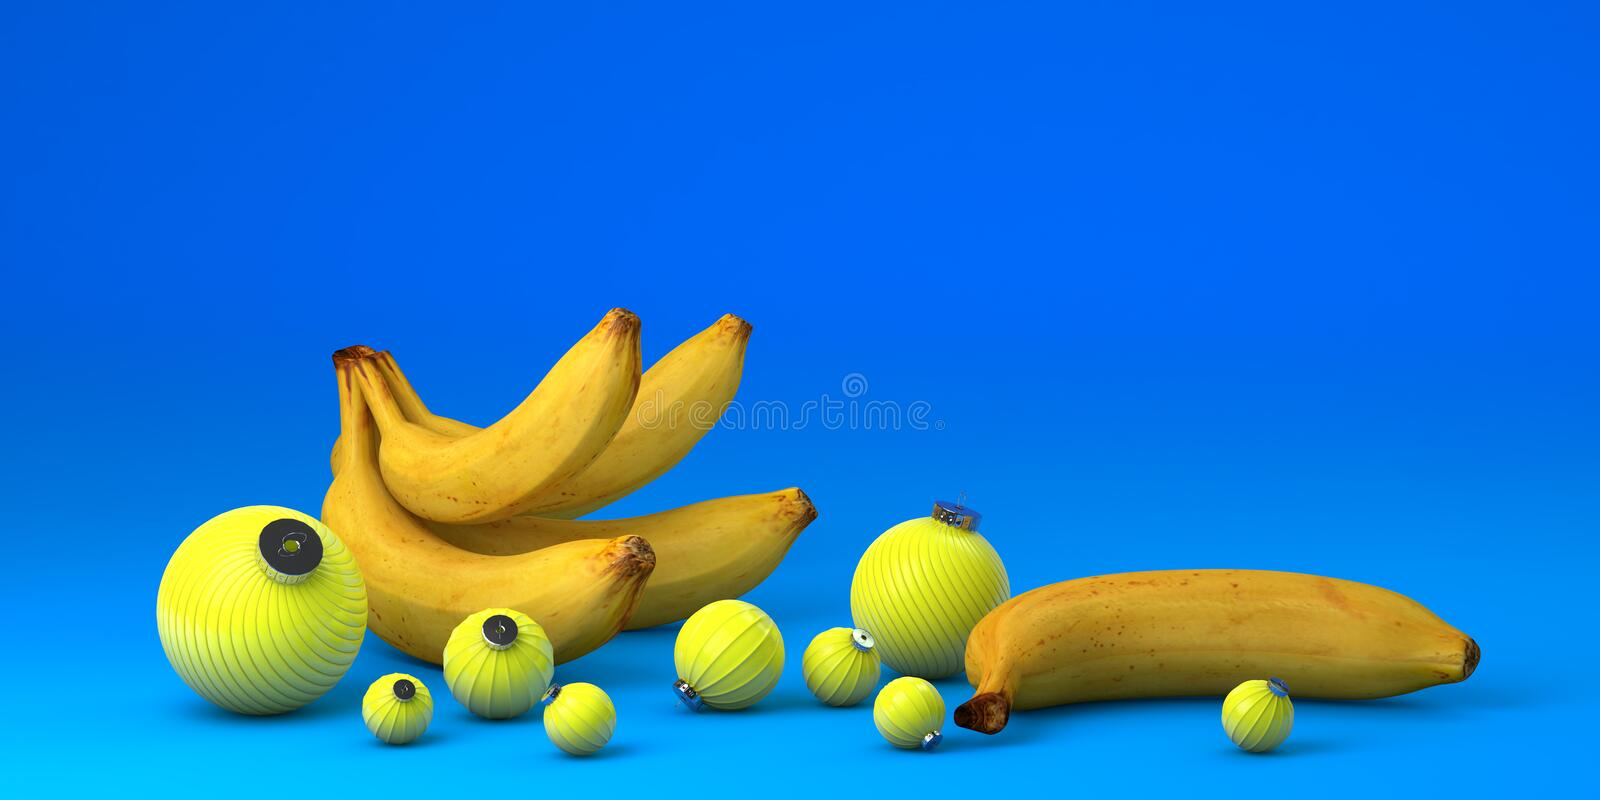 Bananas with toys decoration on blue background royalty free stock photography